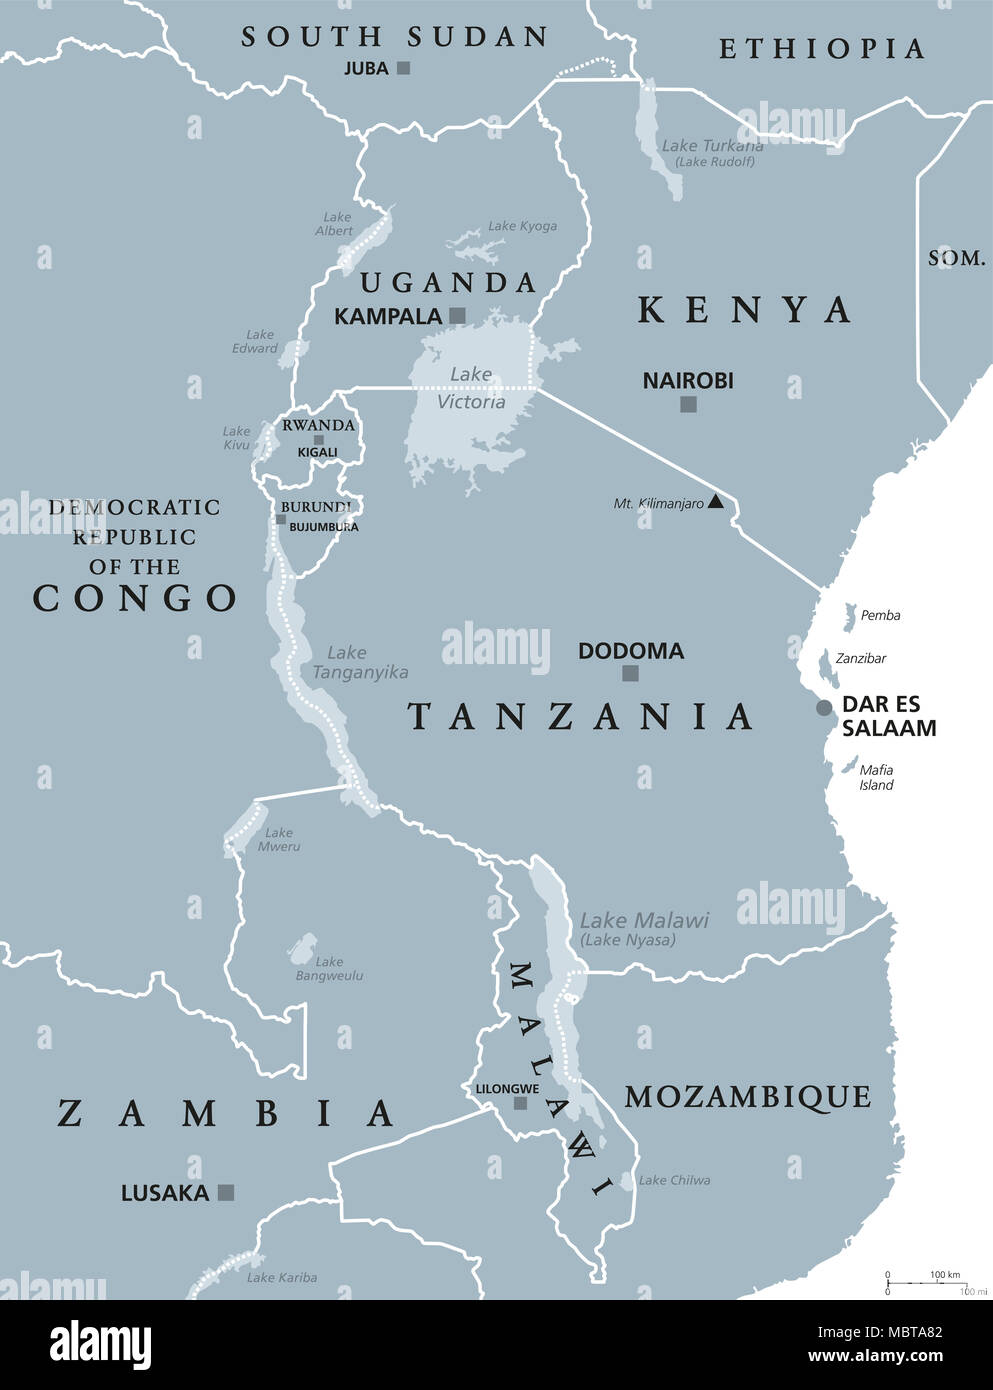 Map Of Africa Lake Victoria.African Great Lakes Political Map With Capitals And Borders Lake